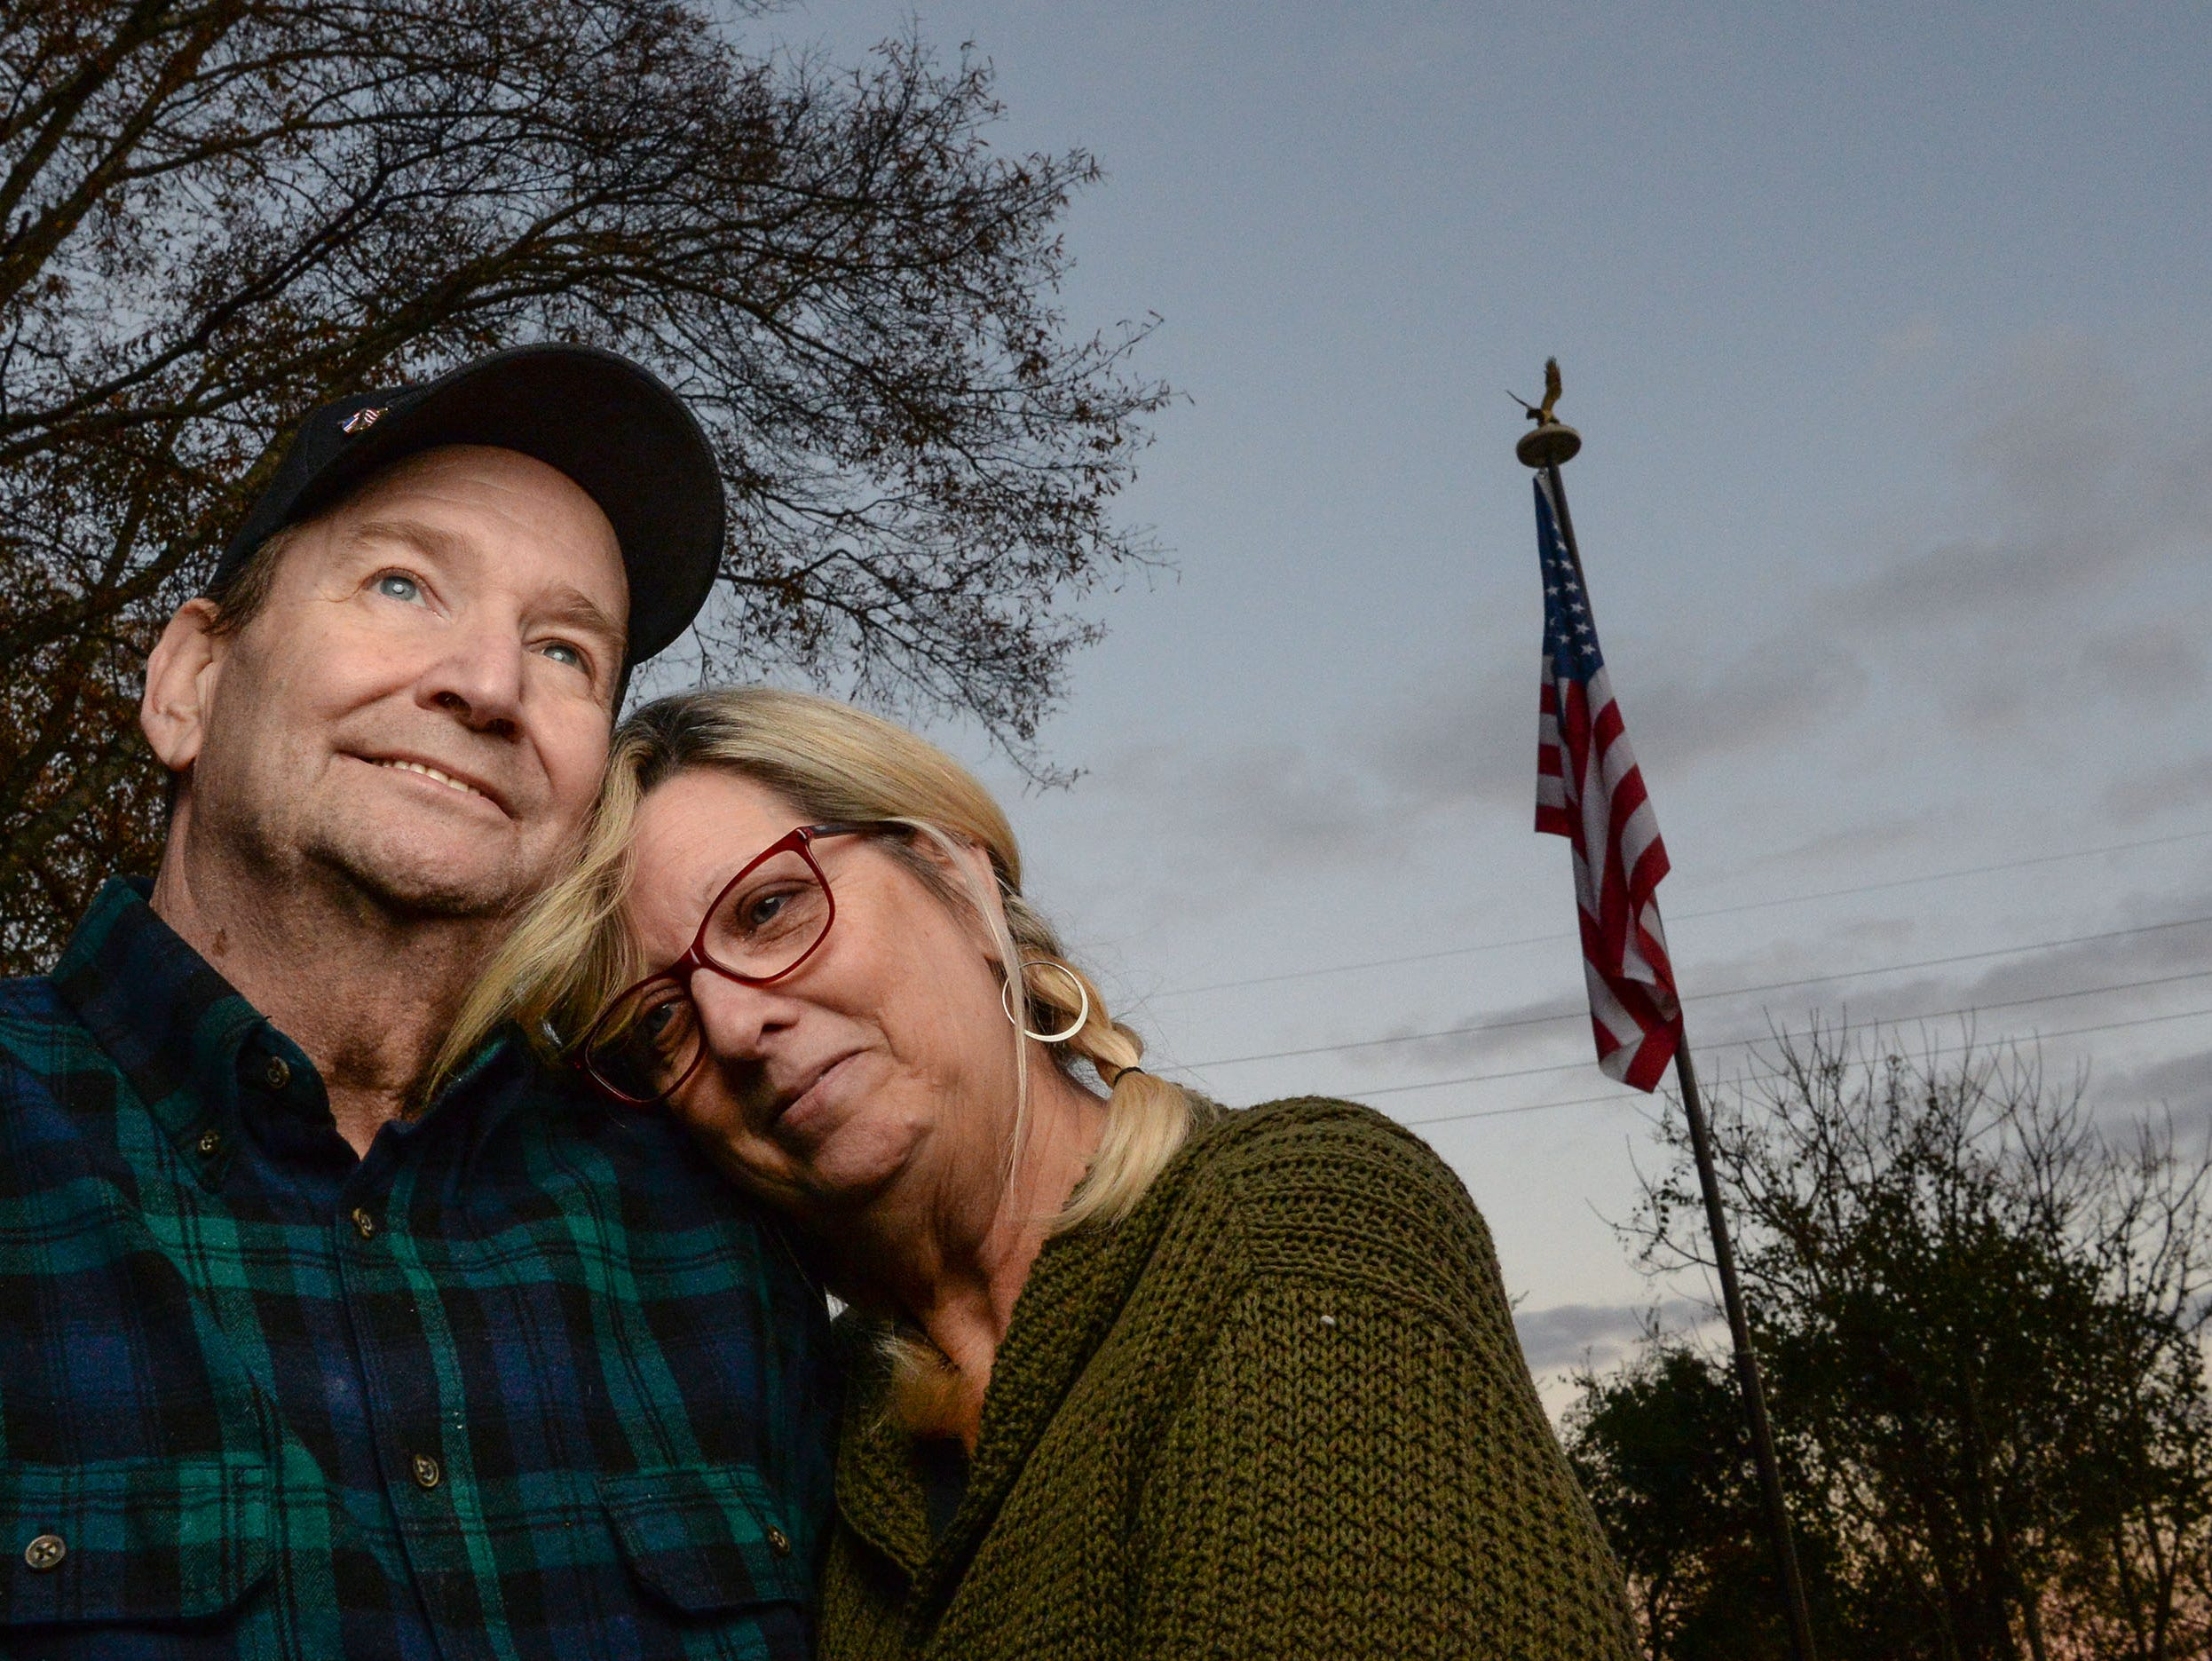 Vietnam Veteran Billy Konrad, left, Bonnie Konrad in their front yard looking at the sunset sky over the West side of Anderson in December. Konrad served in the U.S. Marine Corps from 1966 to 1968 and says he deals with the hardships of health after his time serving.